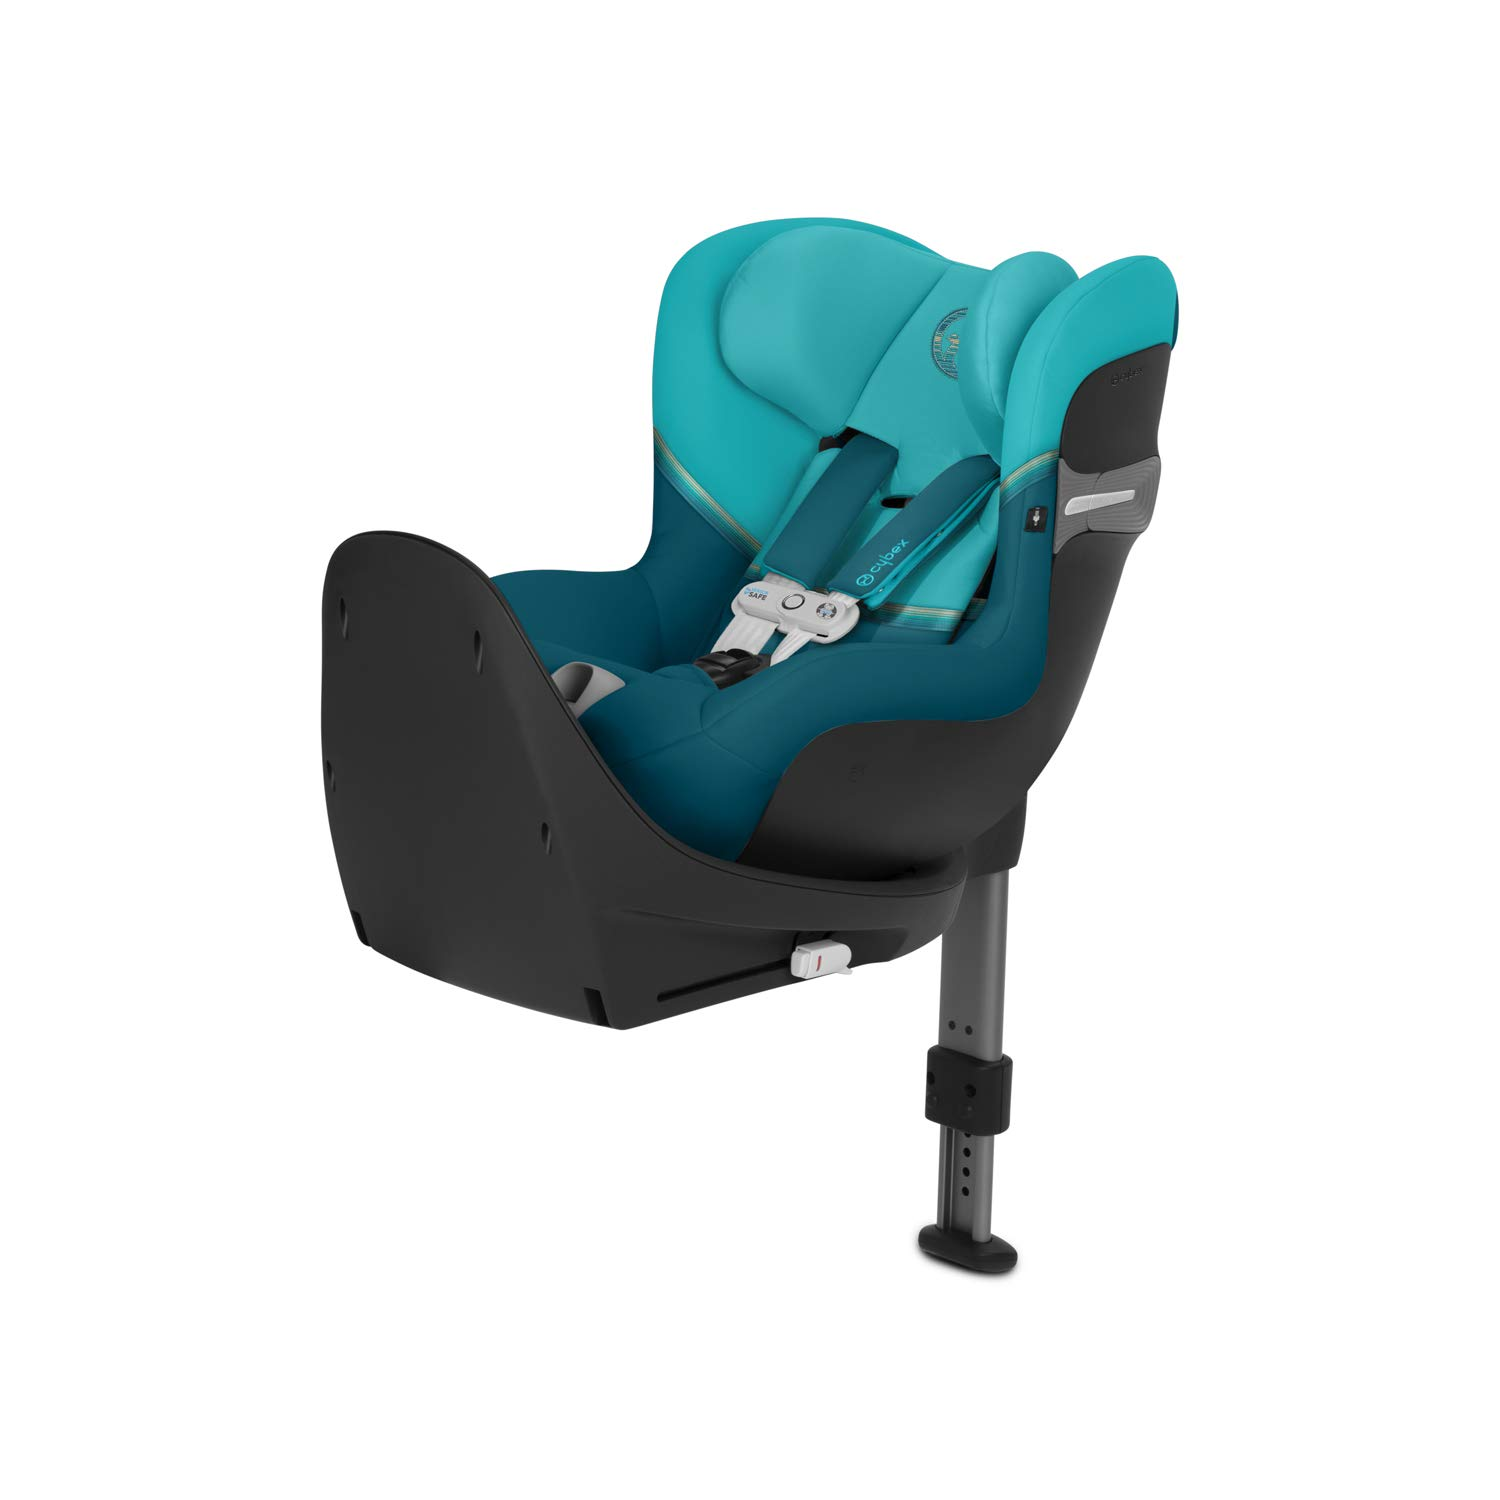 CYBEX Gold Sirona S i-Size Child´s Car Seat incl. SensorSafe Smart chest clip, 360° Rotation for Easy Entry and Exit Position, Group 0+/1 (Max 18 kg) From Birth Up to Approx. 4 Years, River Blue